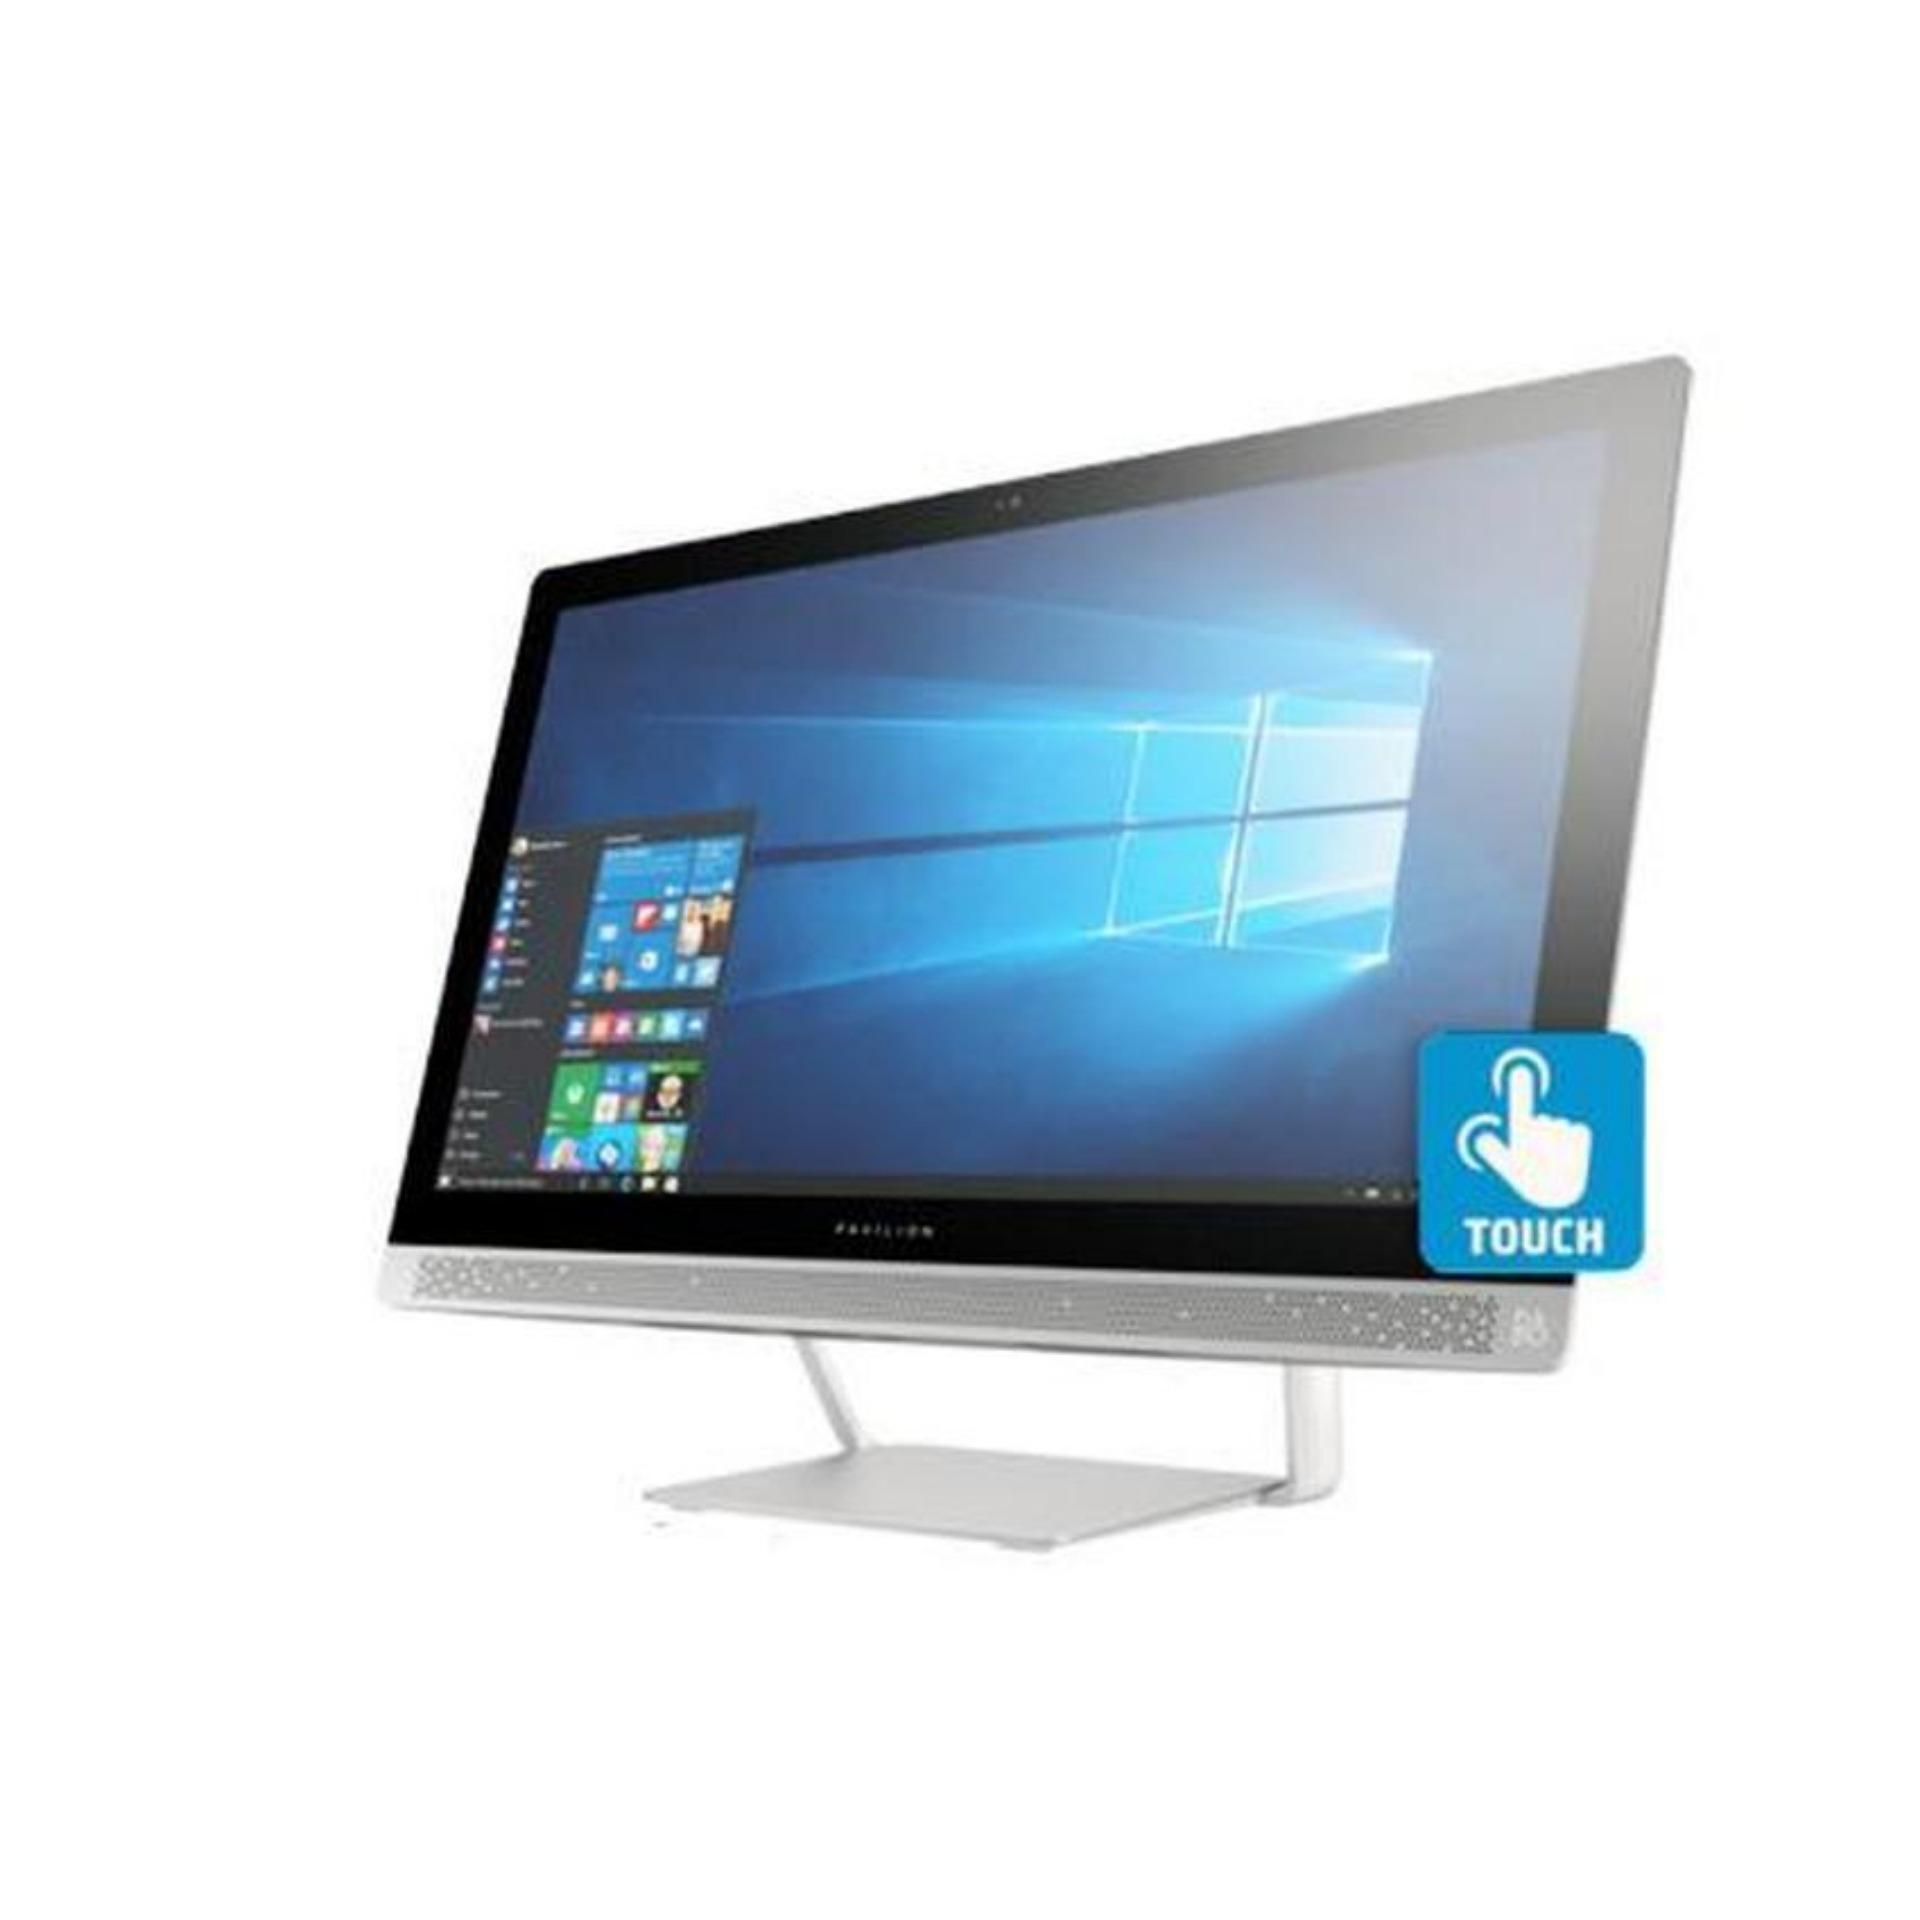 Hp Pc Alo 27 A172d Core I7 6700 16gb 2tb Touch Win10 Update Aio A274d Z8g49aa